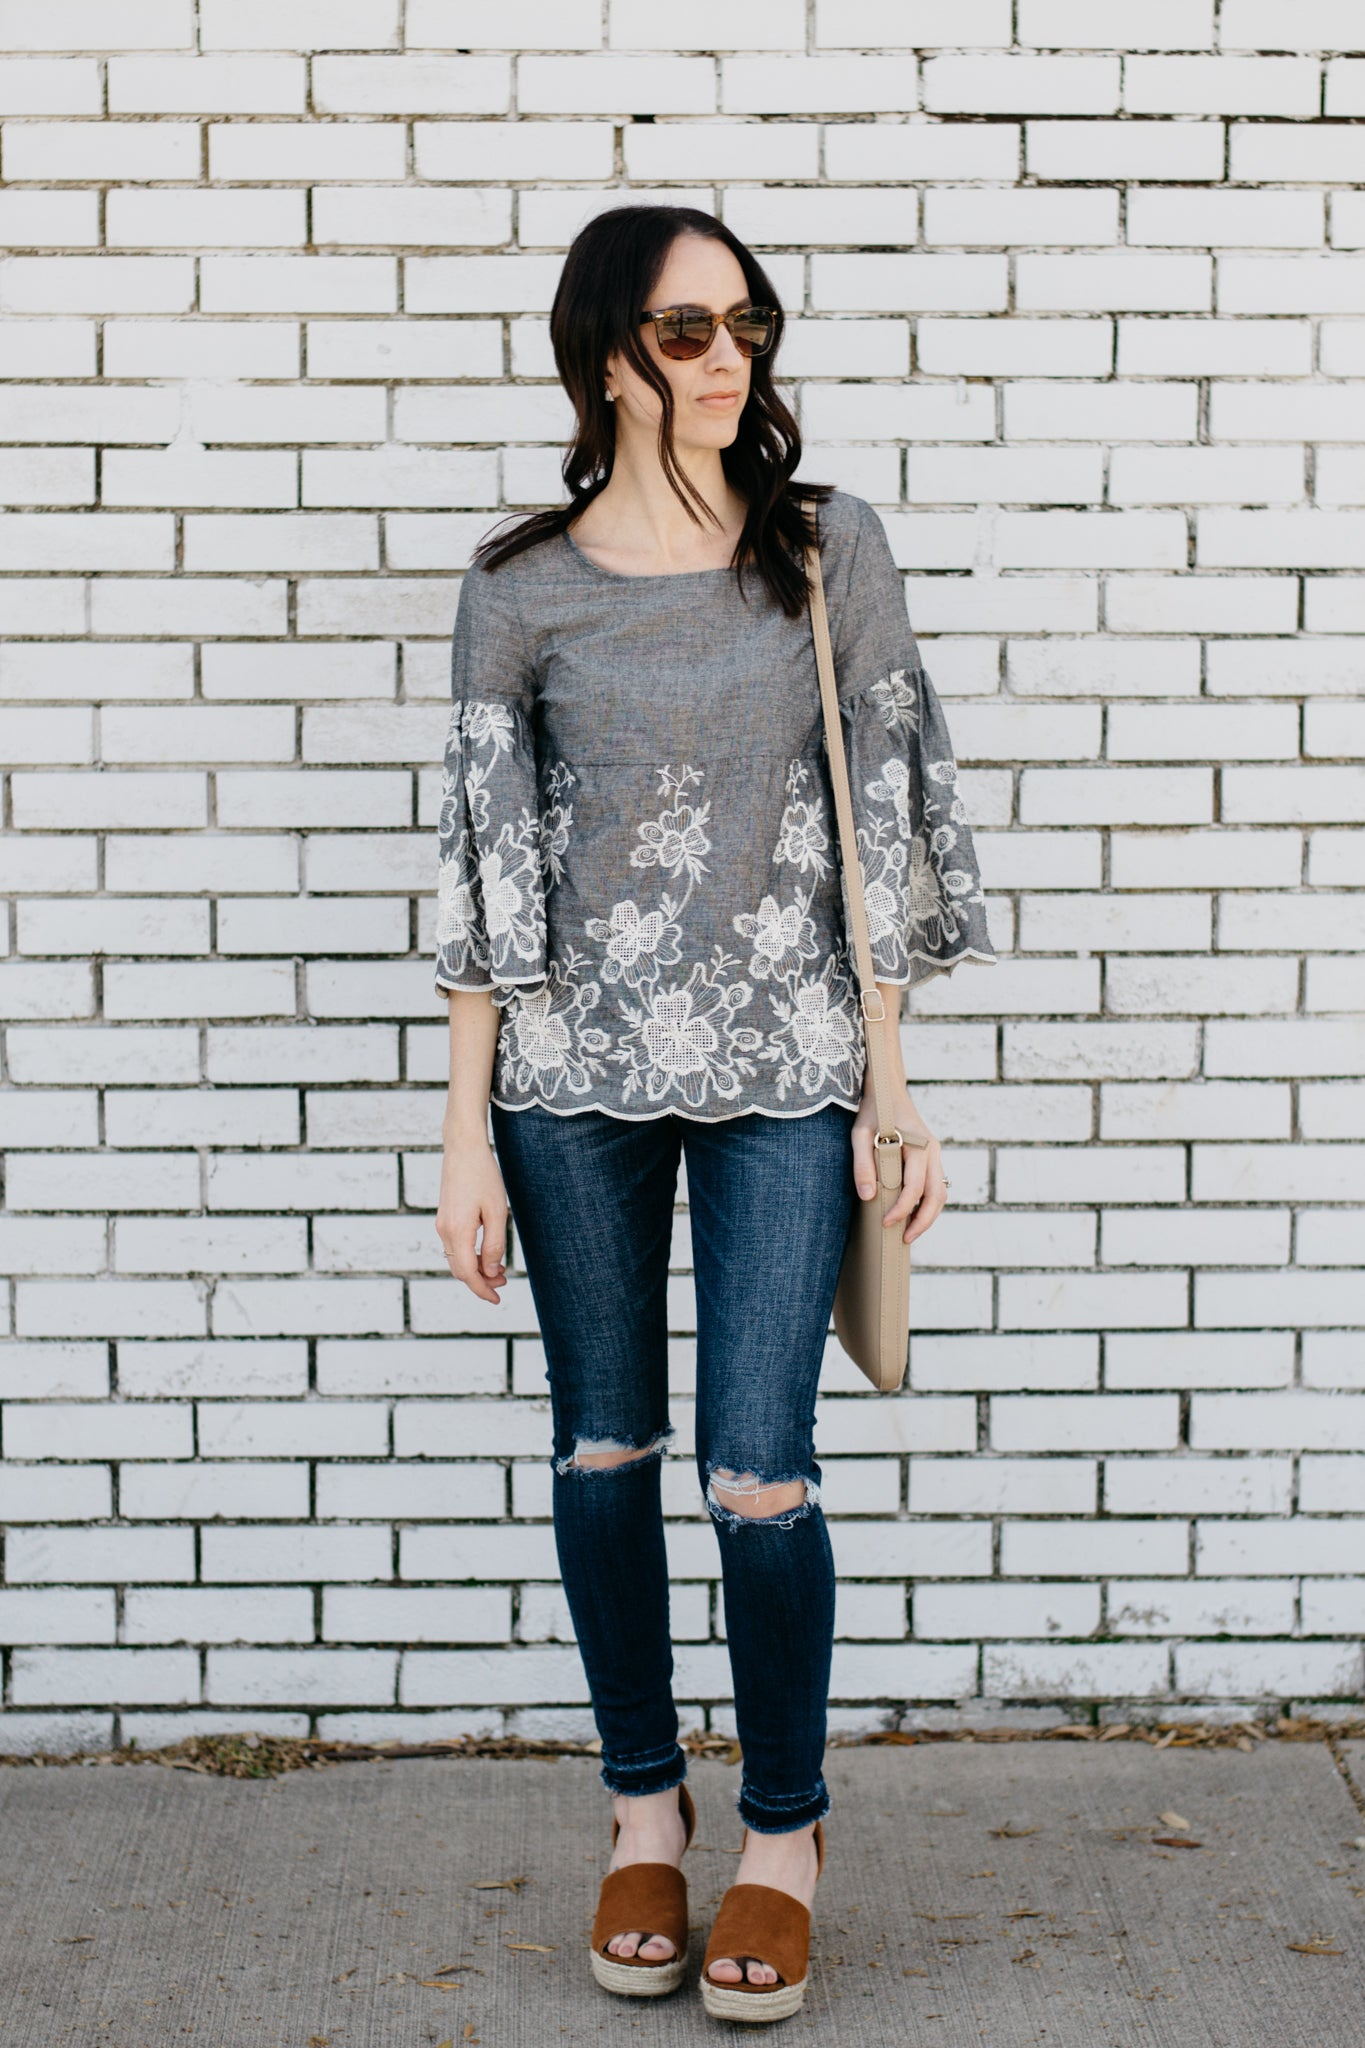 Gray 3/4 sleeve blouse with white floral hem